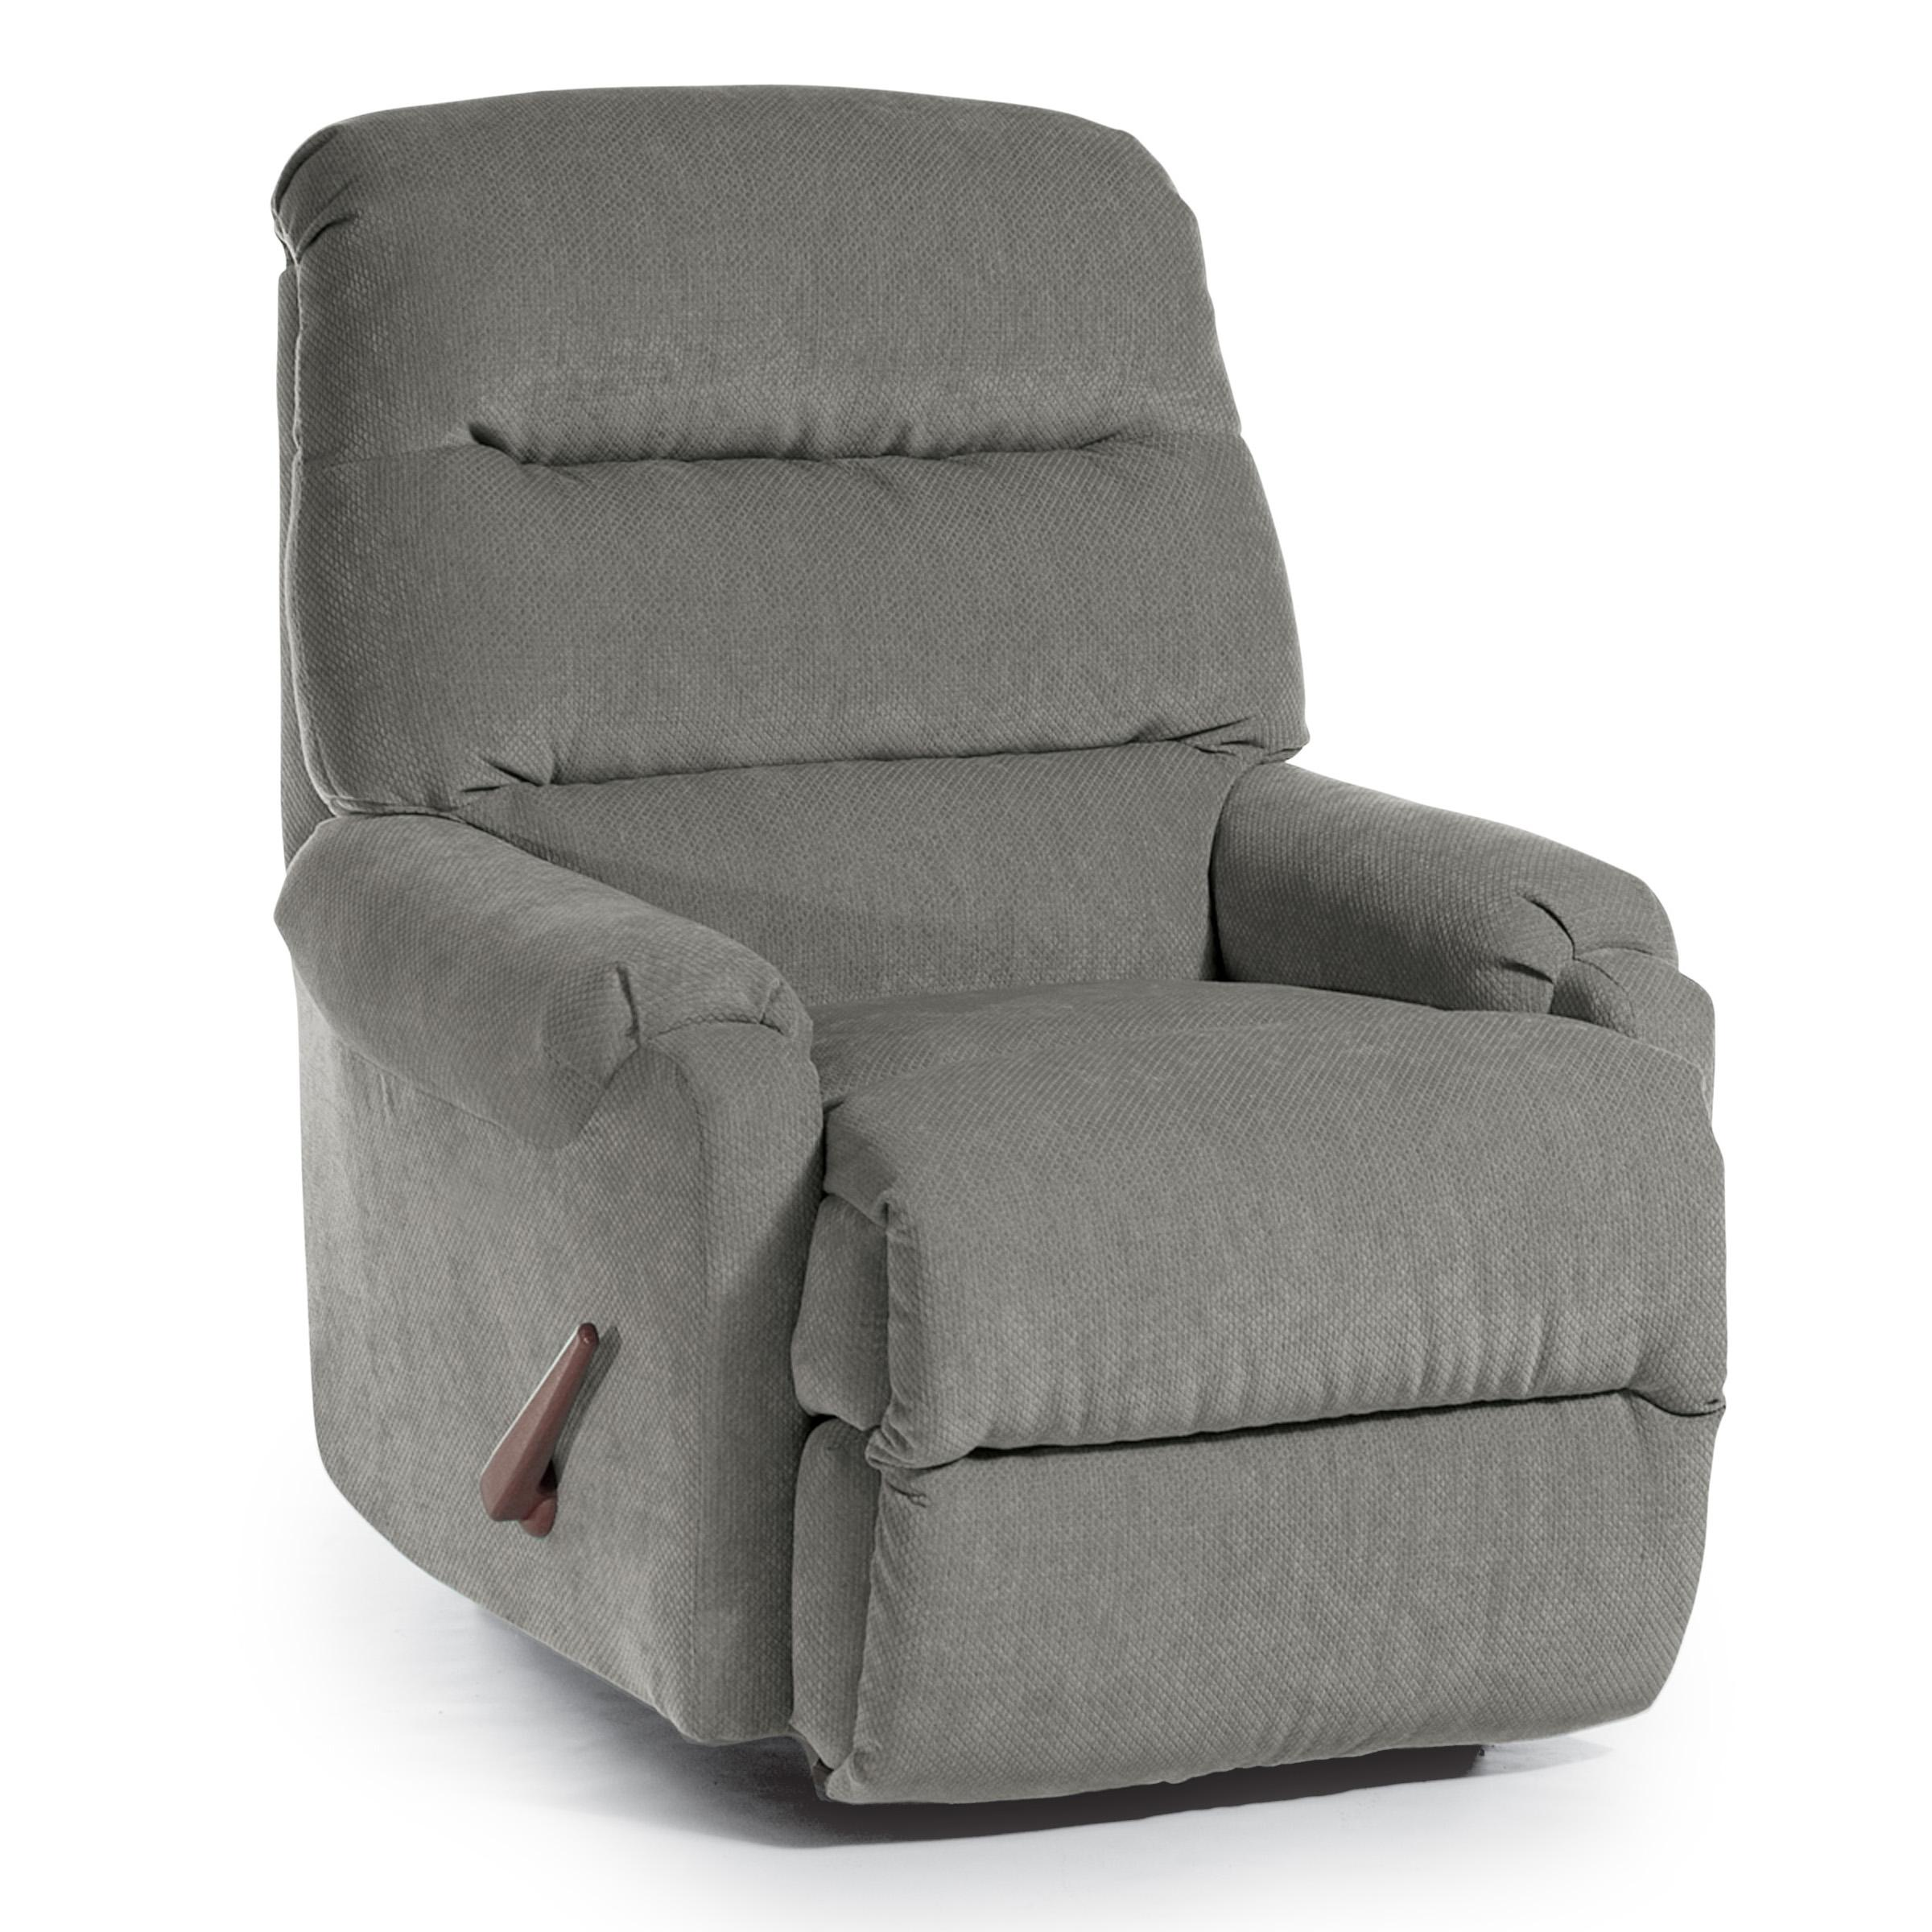 Reclining Rocking Chair Best Home Furnishings Medium Recliners 9aw69 Sedgefield